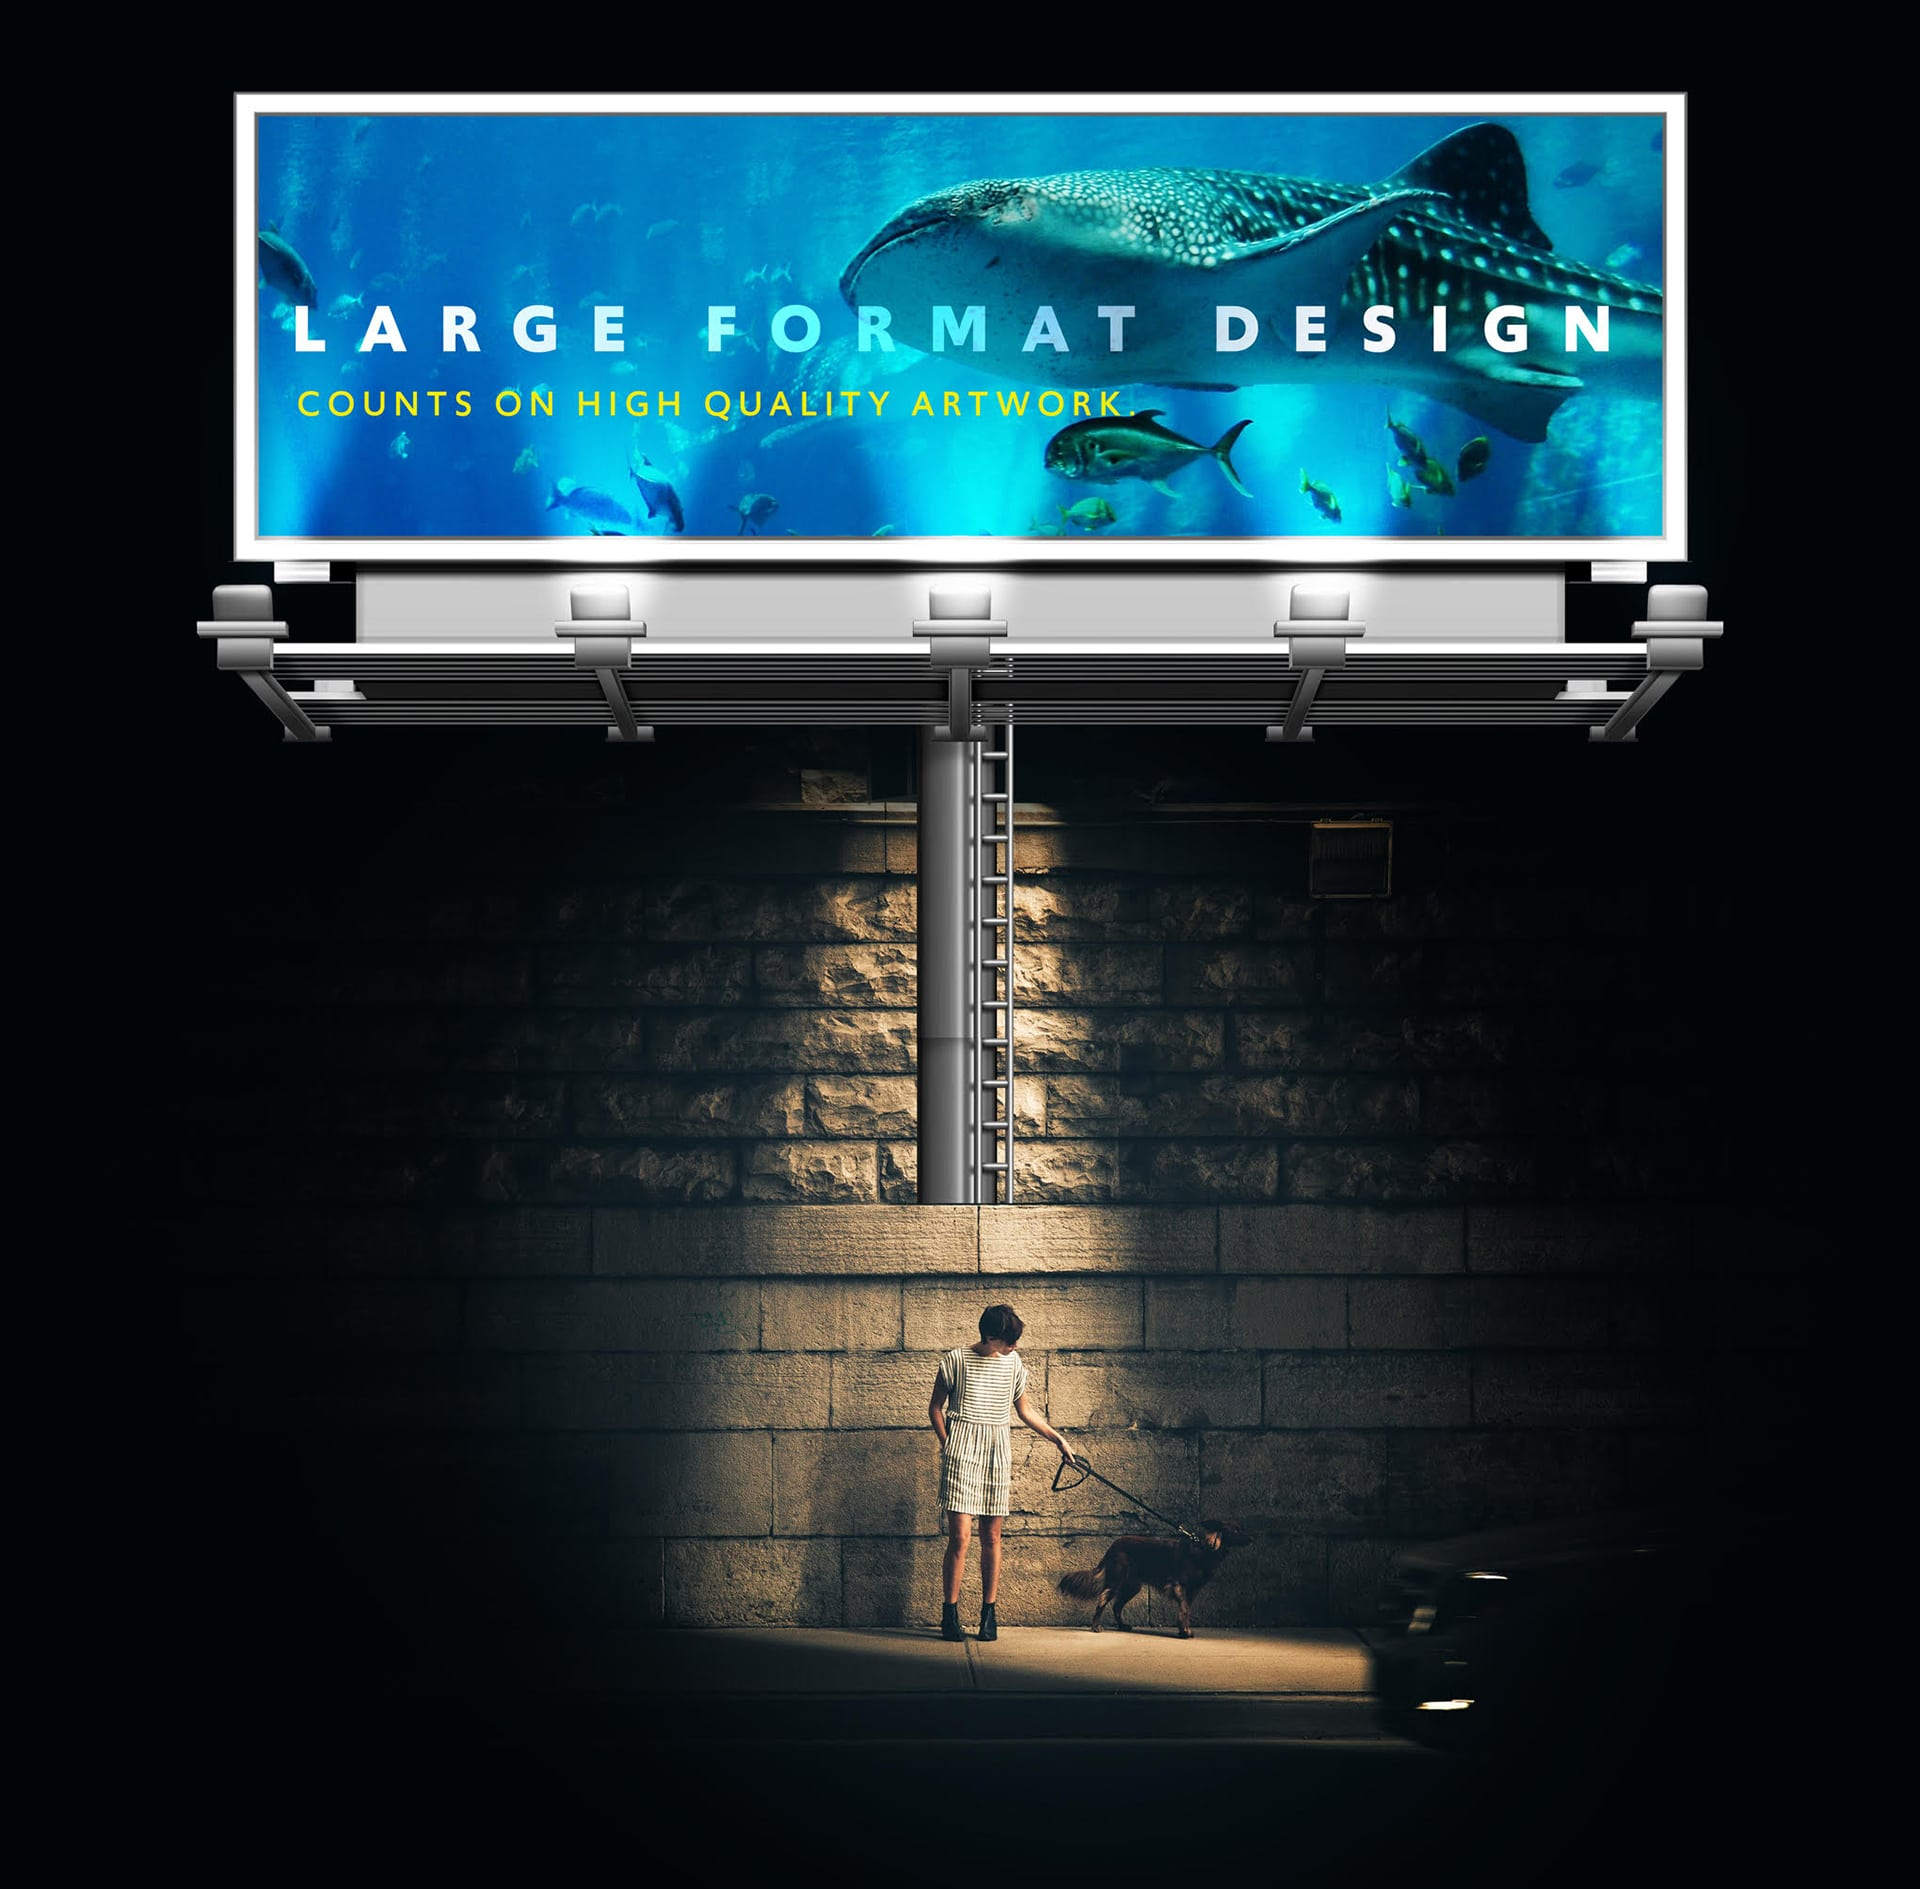 Designs for large format printing